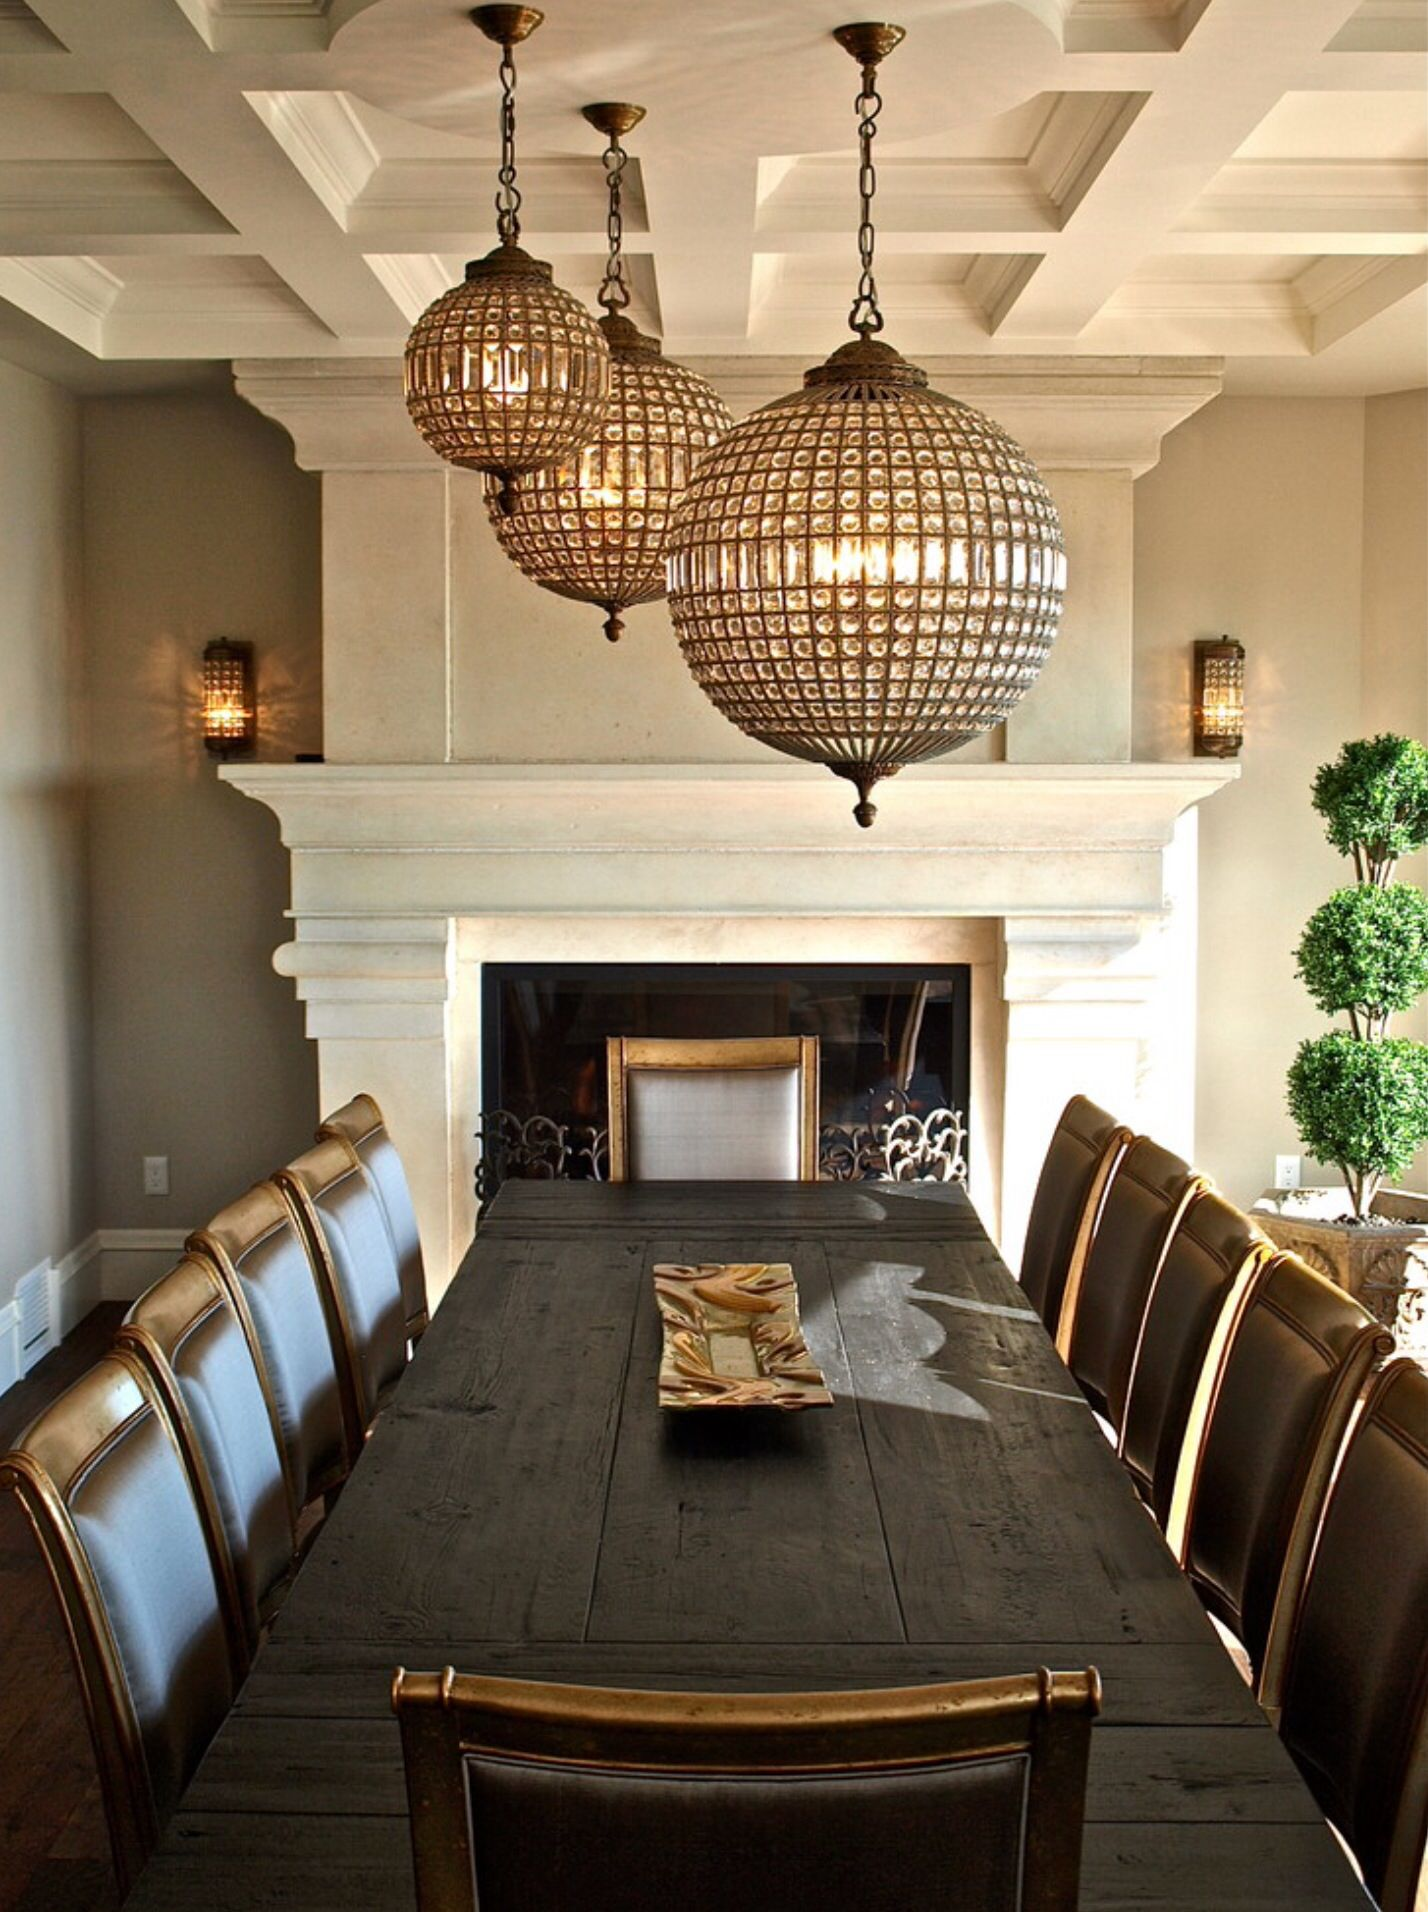 Restoration Hardware Lighting. 1395$ For One. Amazing Pictures